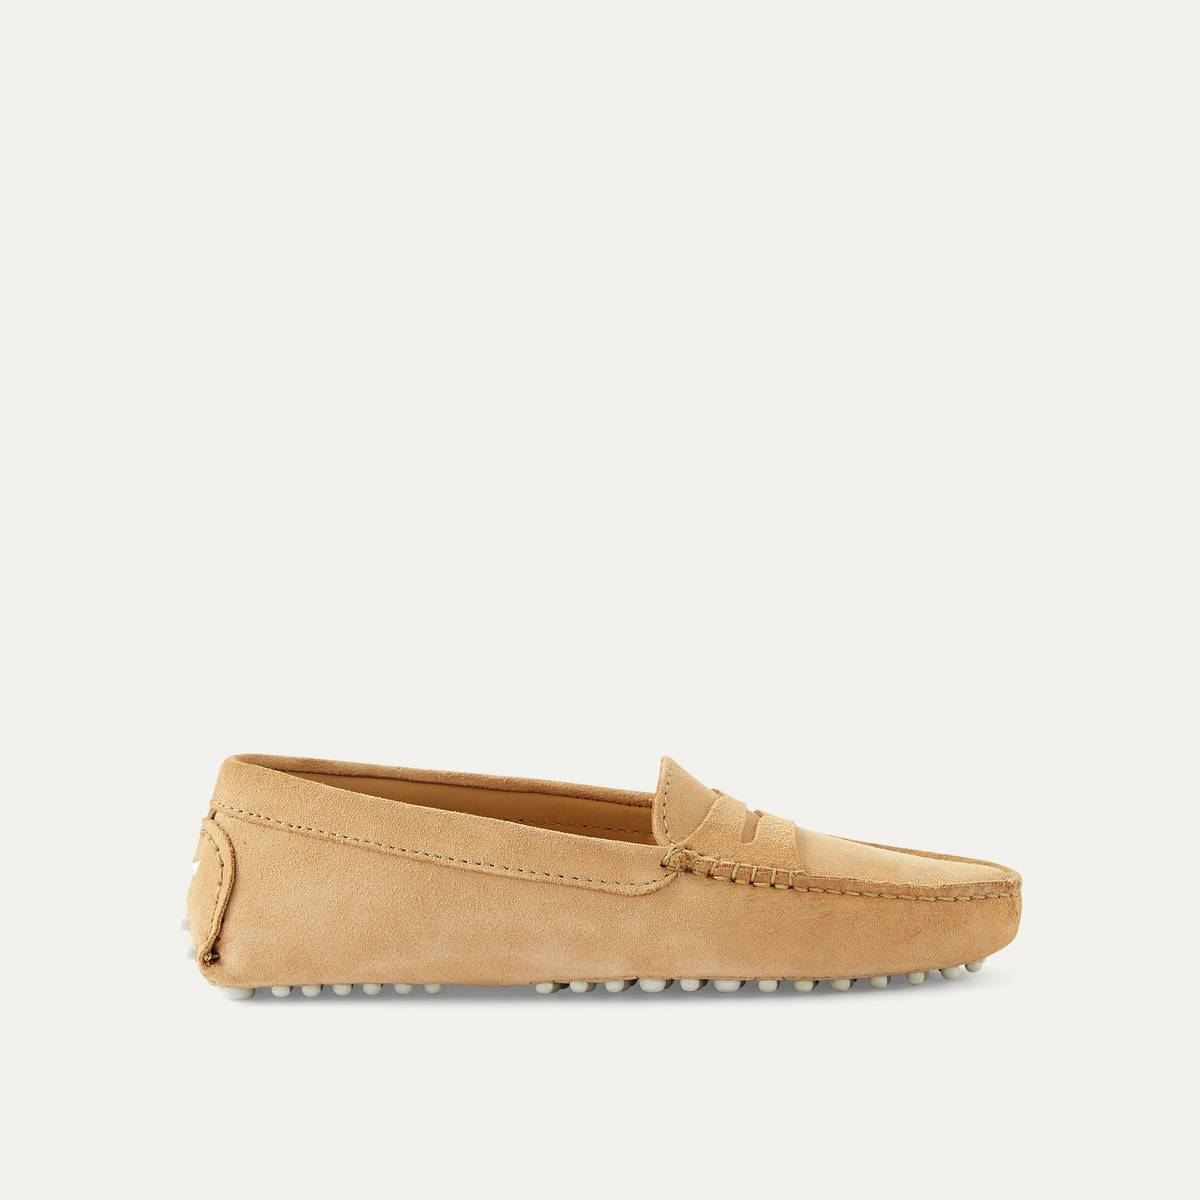 BOBBIES Mocasines de piel beige